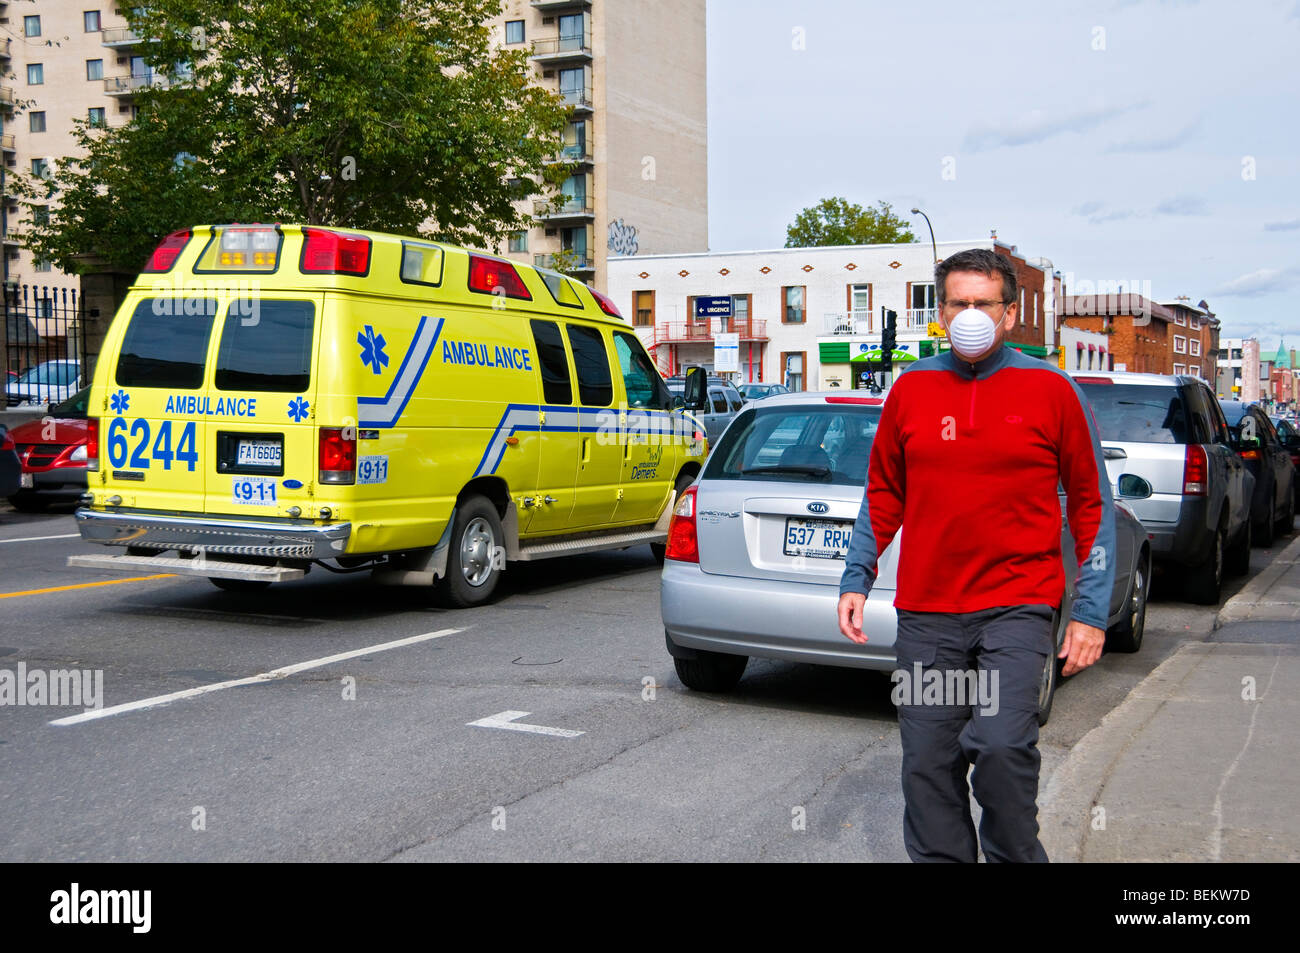 Man walking with protective mask - Stock Image